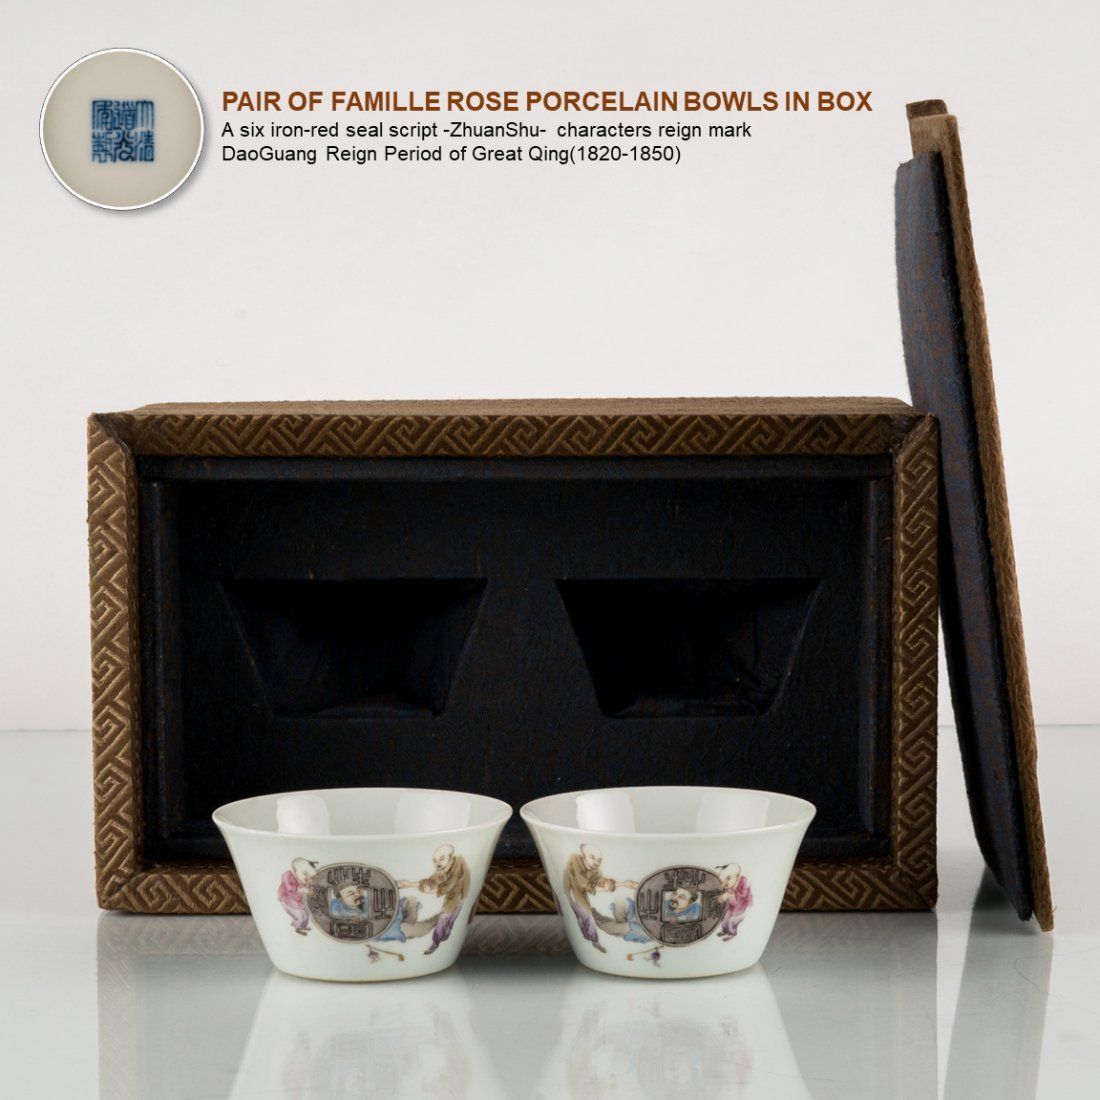 PAIR OF FAMILLE ROSE PORCELAIN BOWLS IN BOX